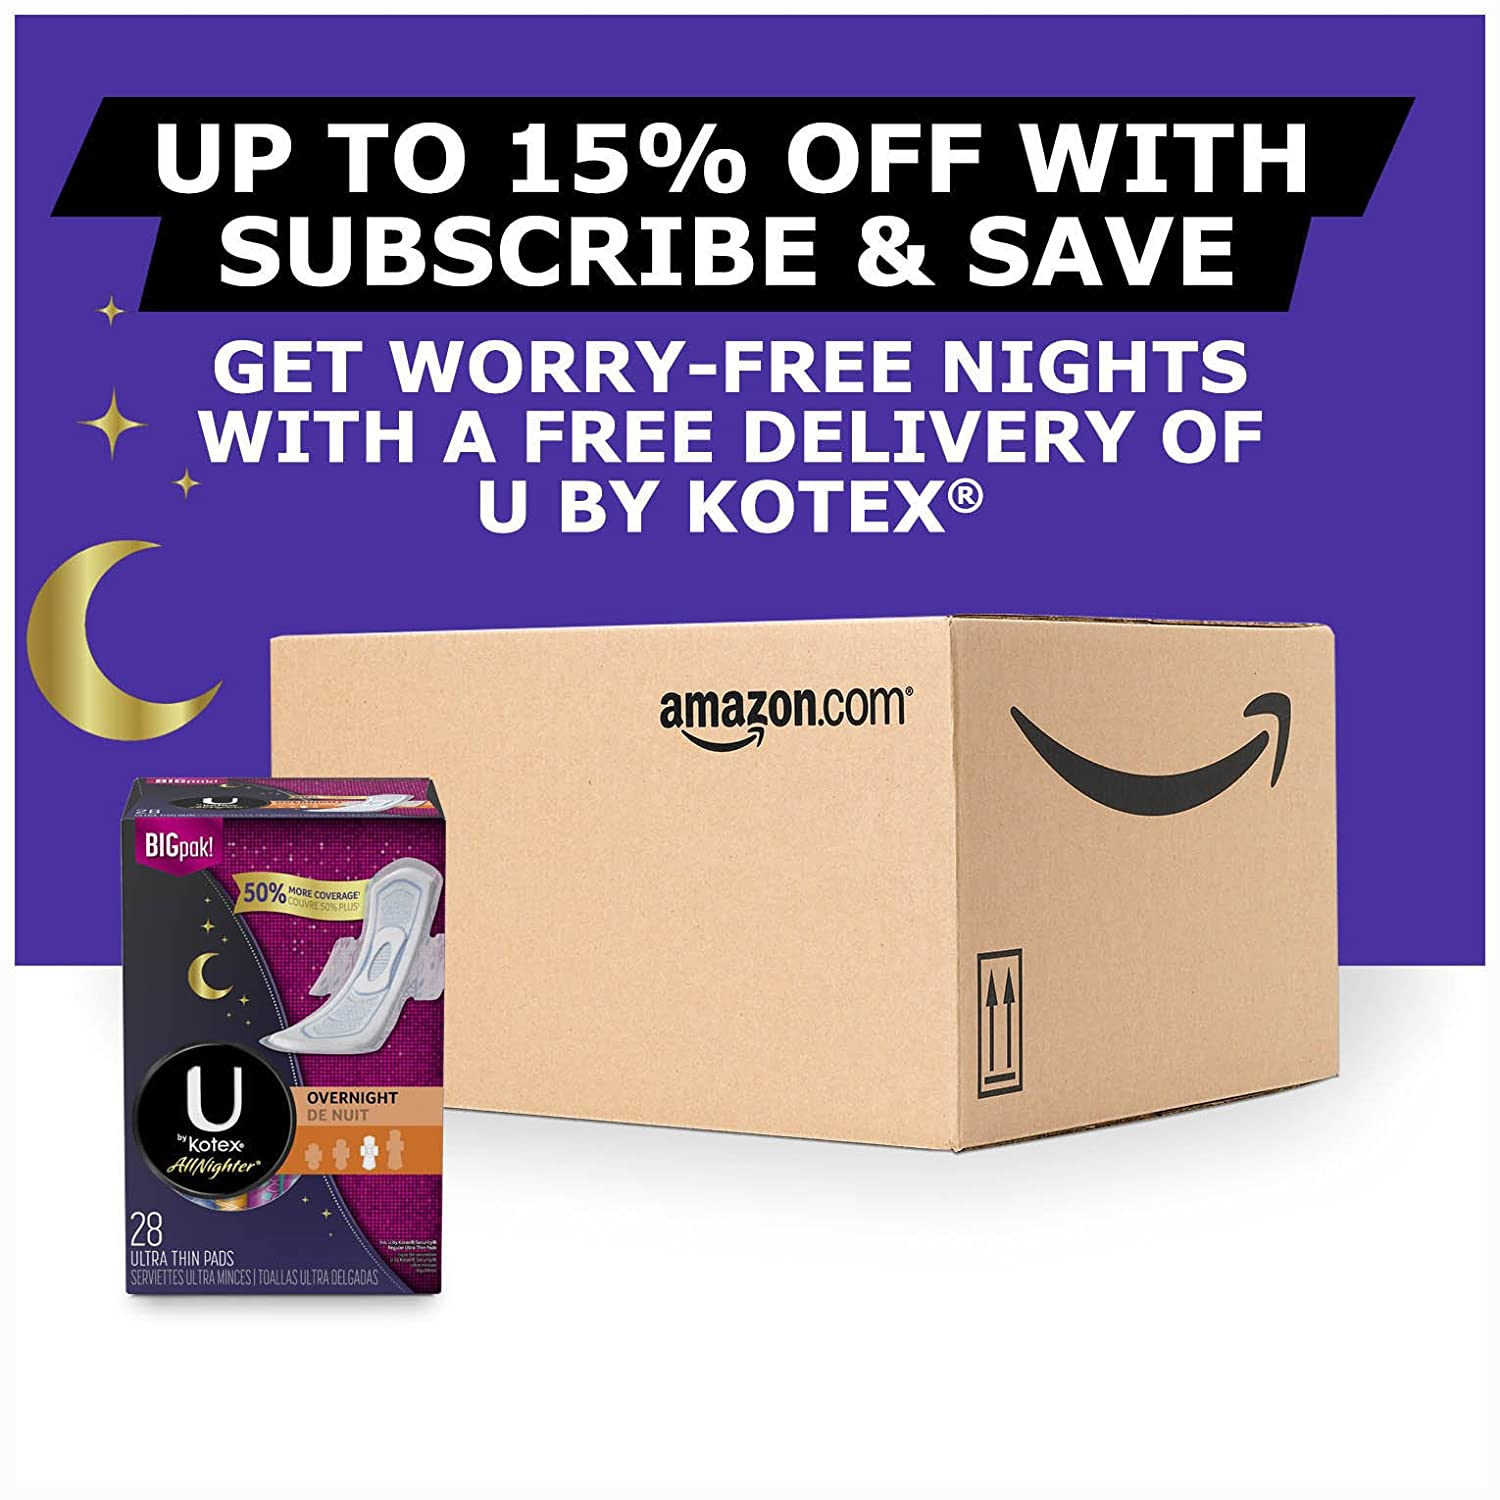 Amazon.com: U By Kotex Allnighter Ultra Thin Overnight Pads with Wings, 28 Count: Health & Personal Care